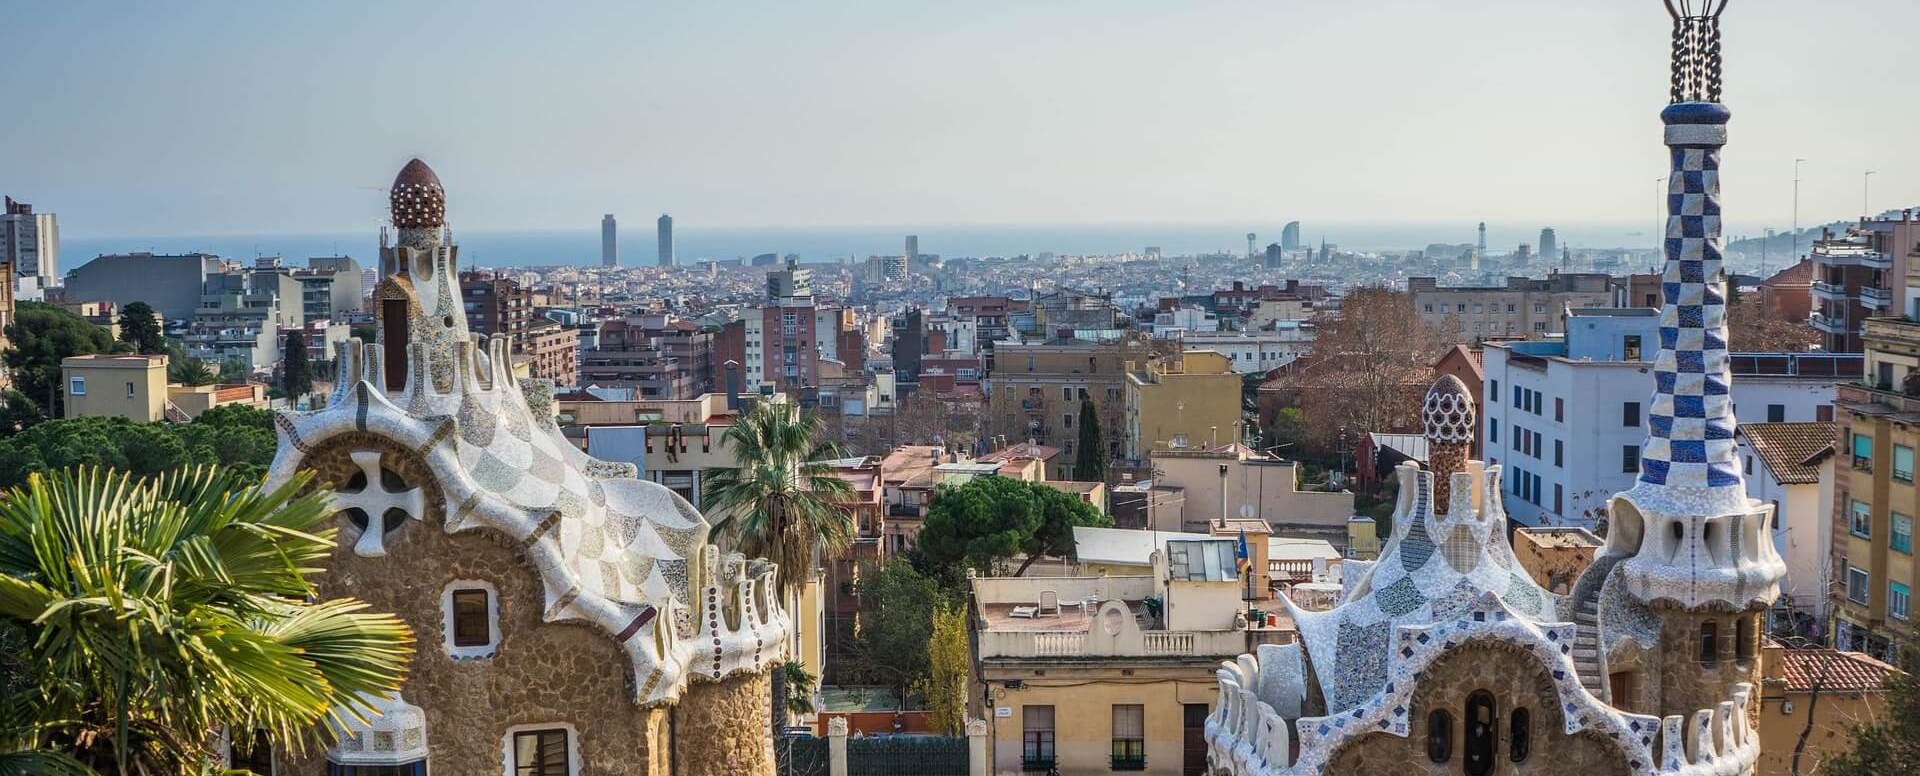 The must see sites in Barcelona - Barcelona